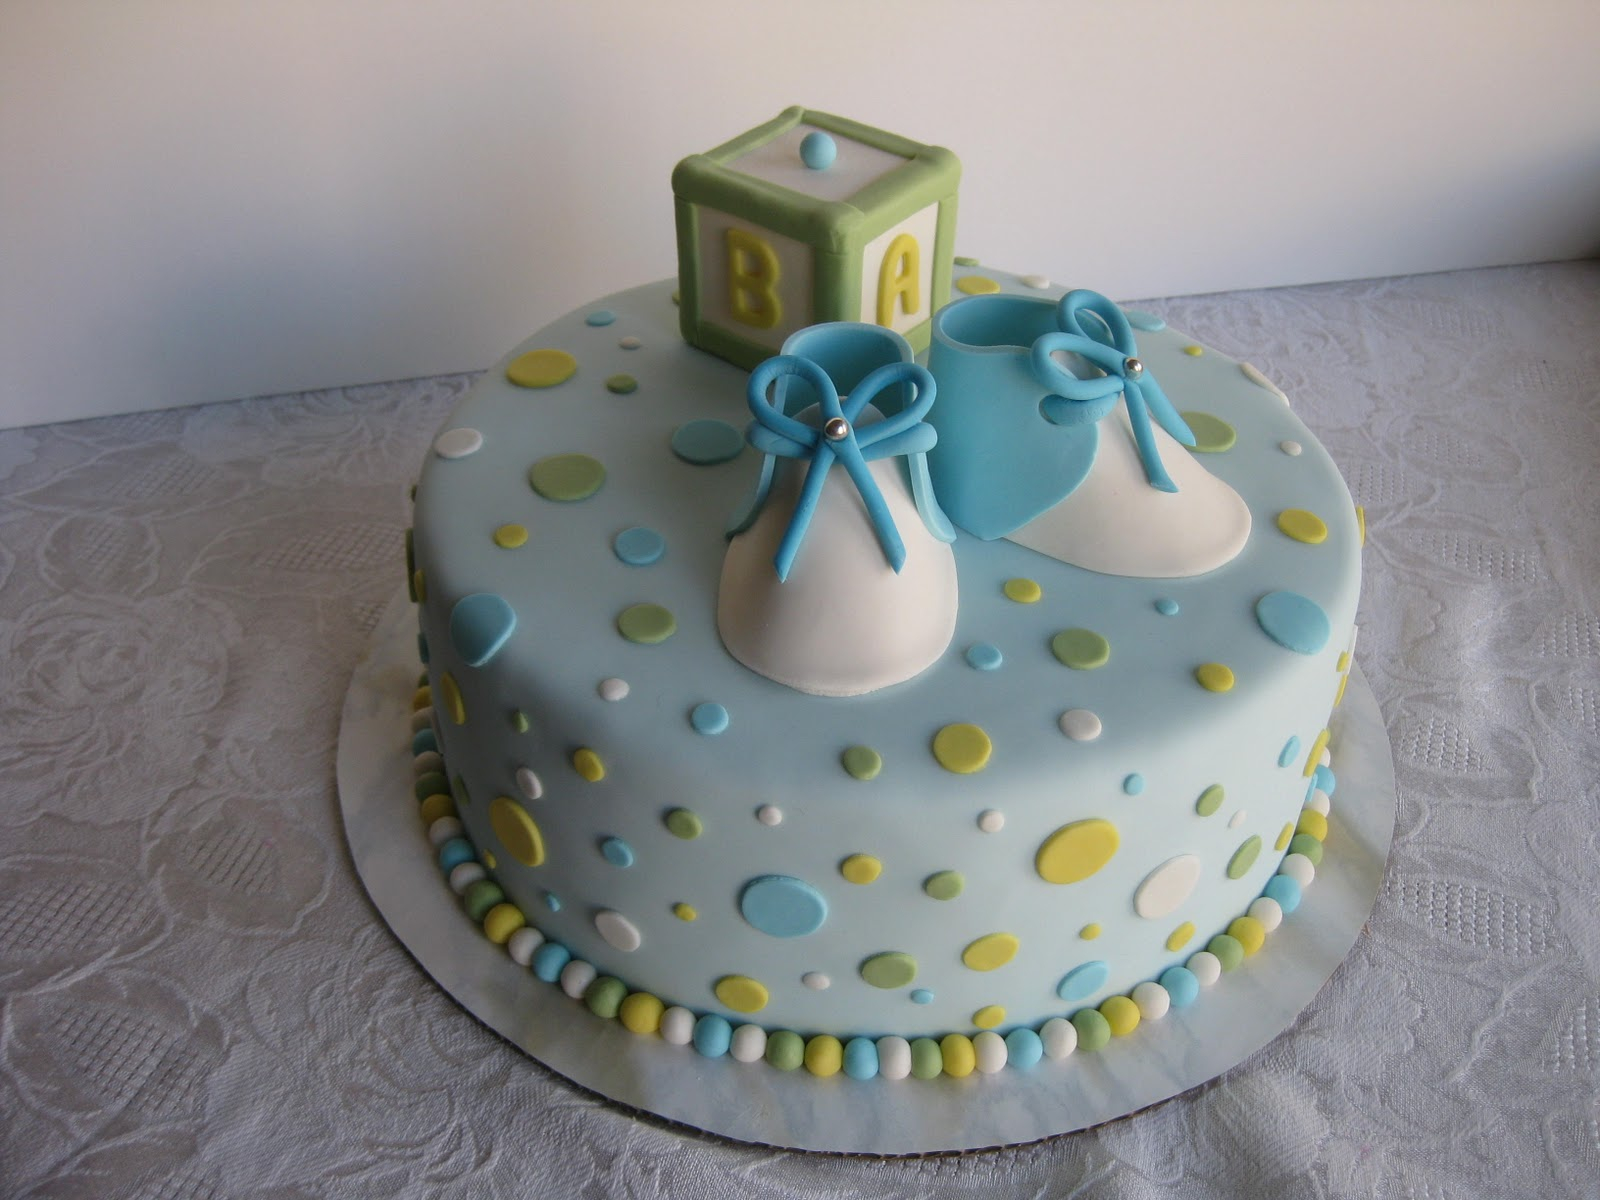 Lovely Publix Cake Prices | Birthday, Wedding & Baby Shower | All Cake Prices in Luxury Baby Shower Cakes Publix